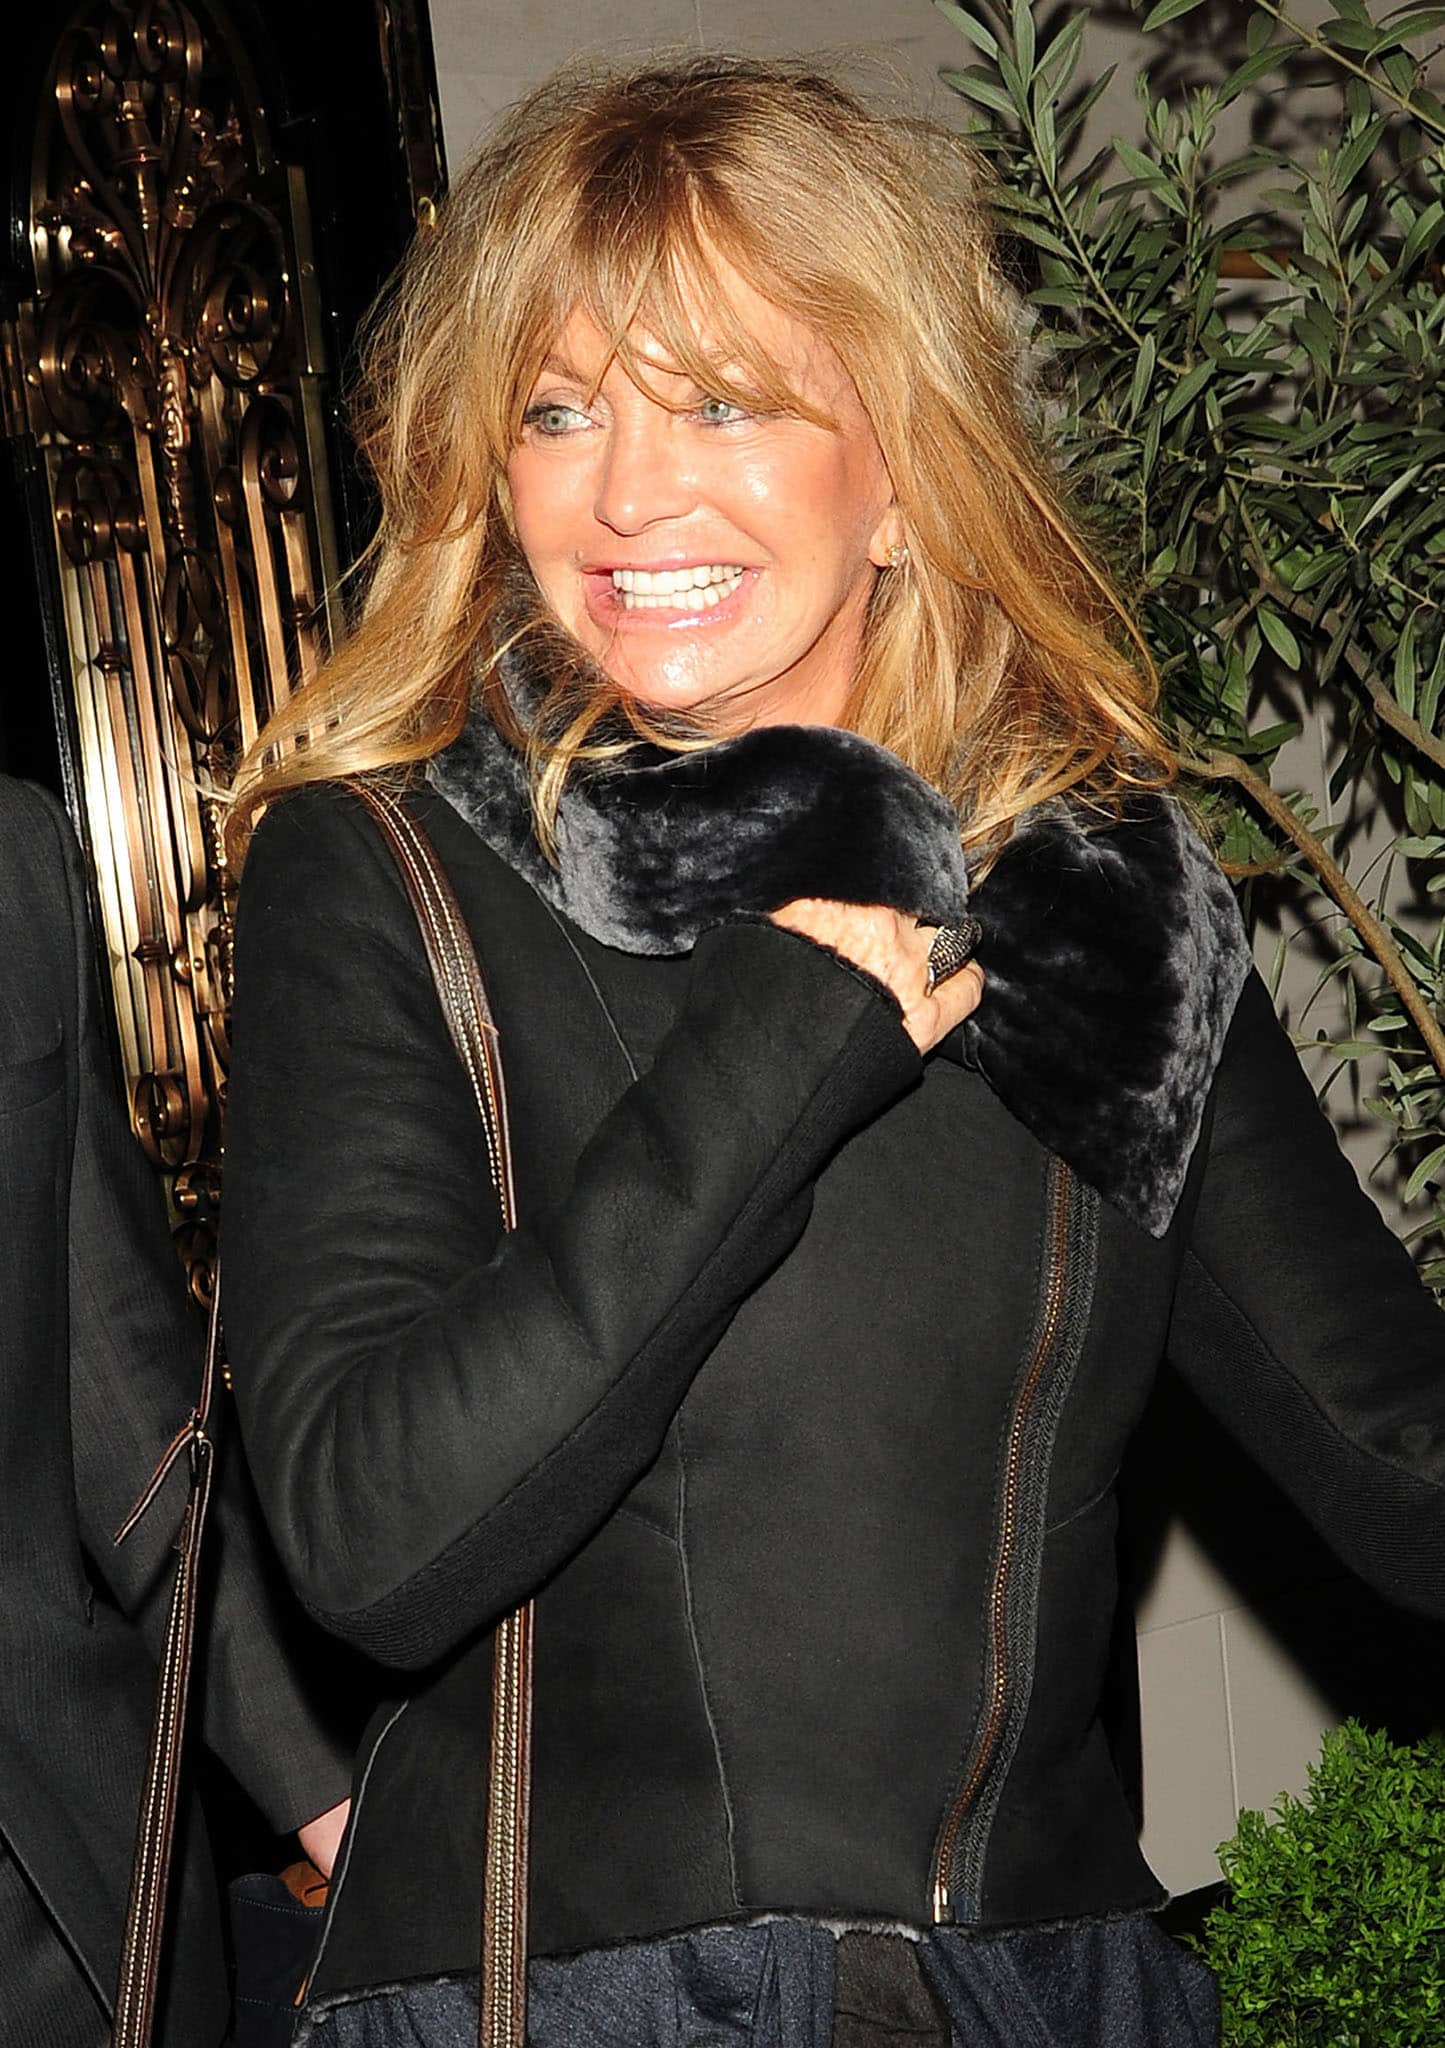 Goldie Hawn, pictured in 2011, has been the subject of plastic surgery speculations for years due to her youthful look